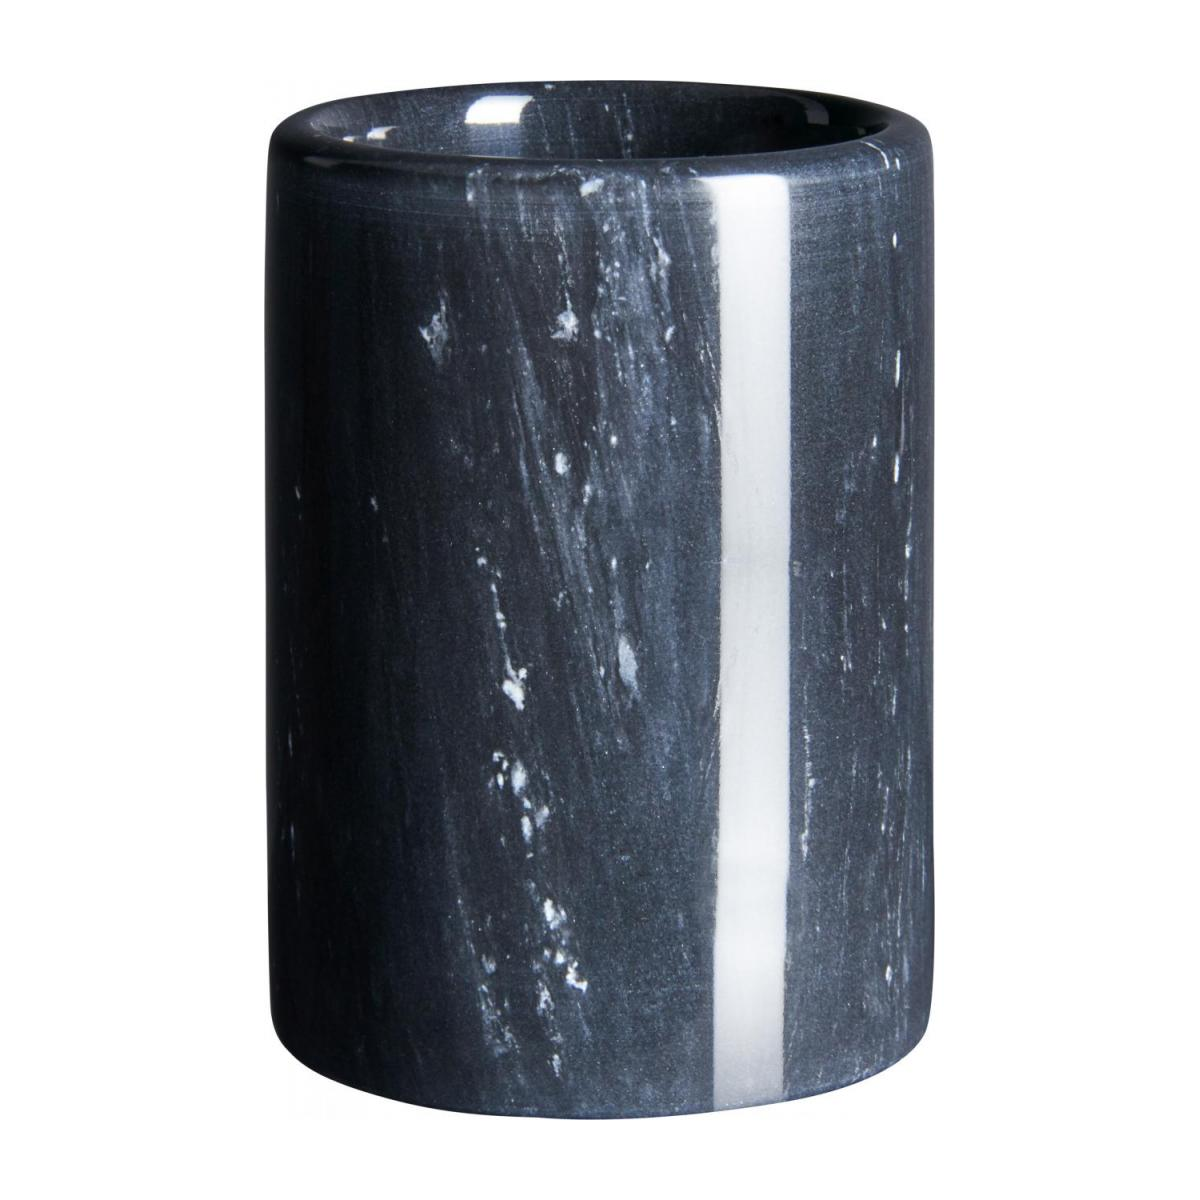 Bathroom tumbler made of marble, black n°1